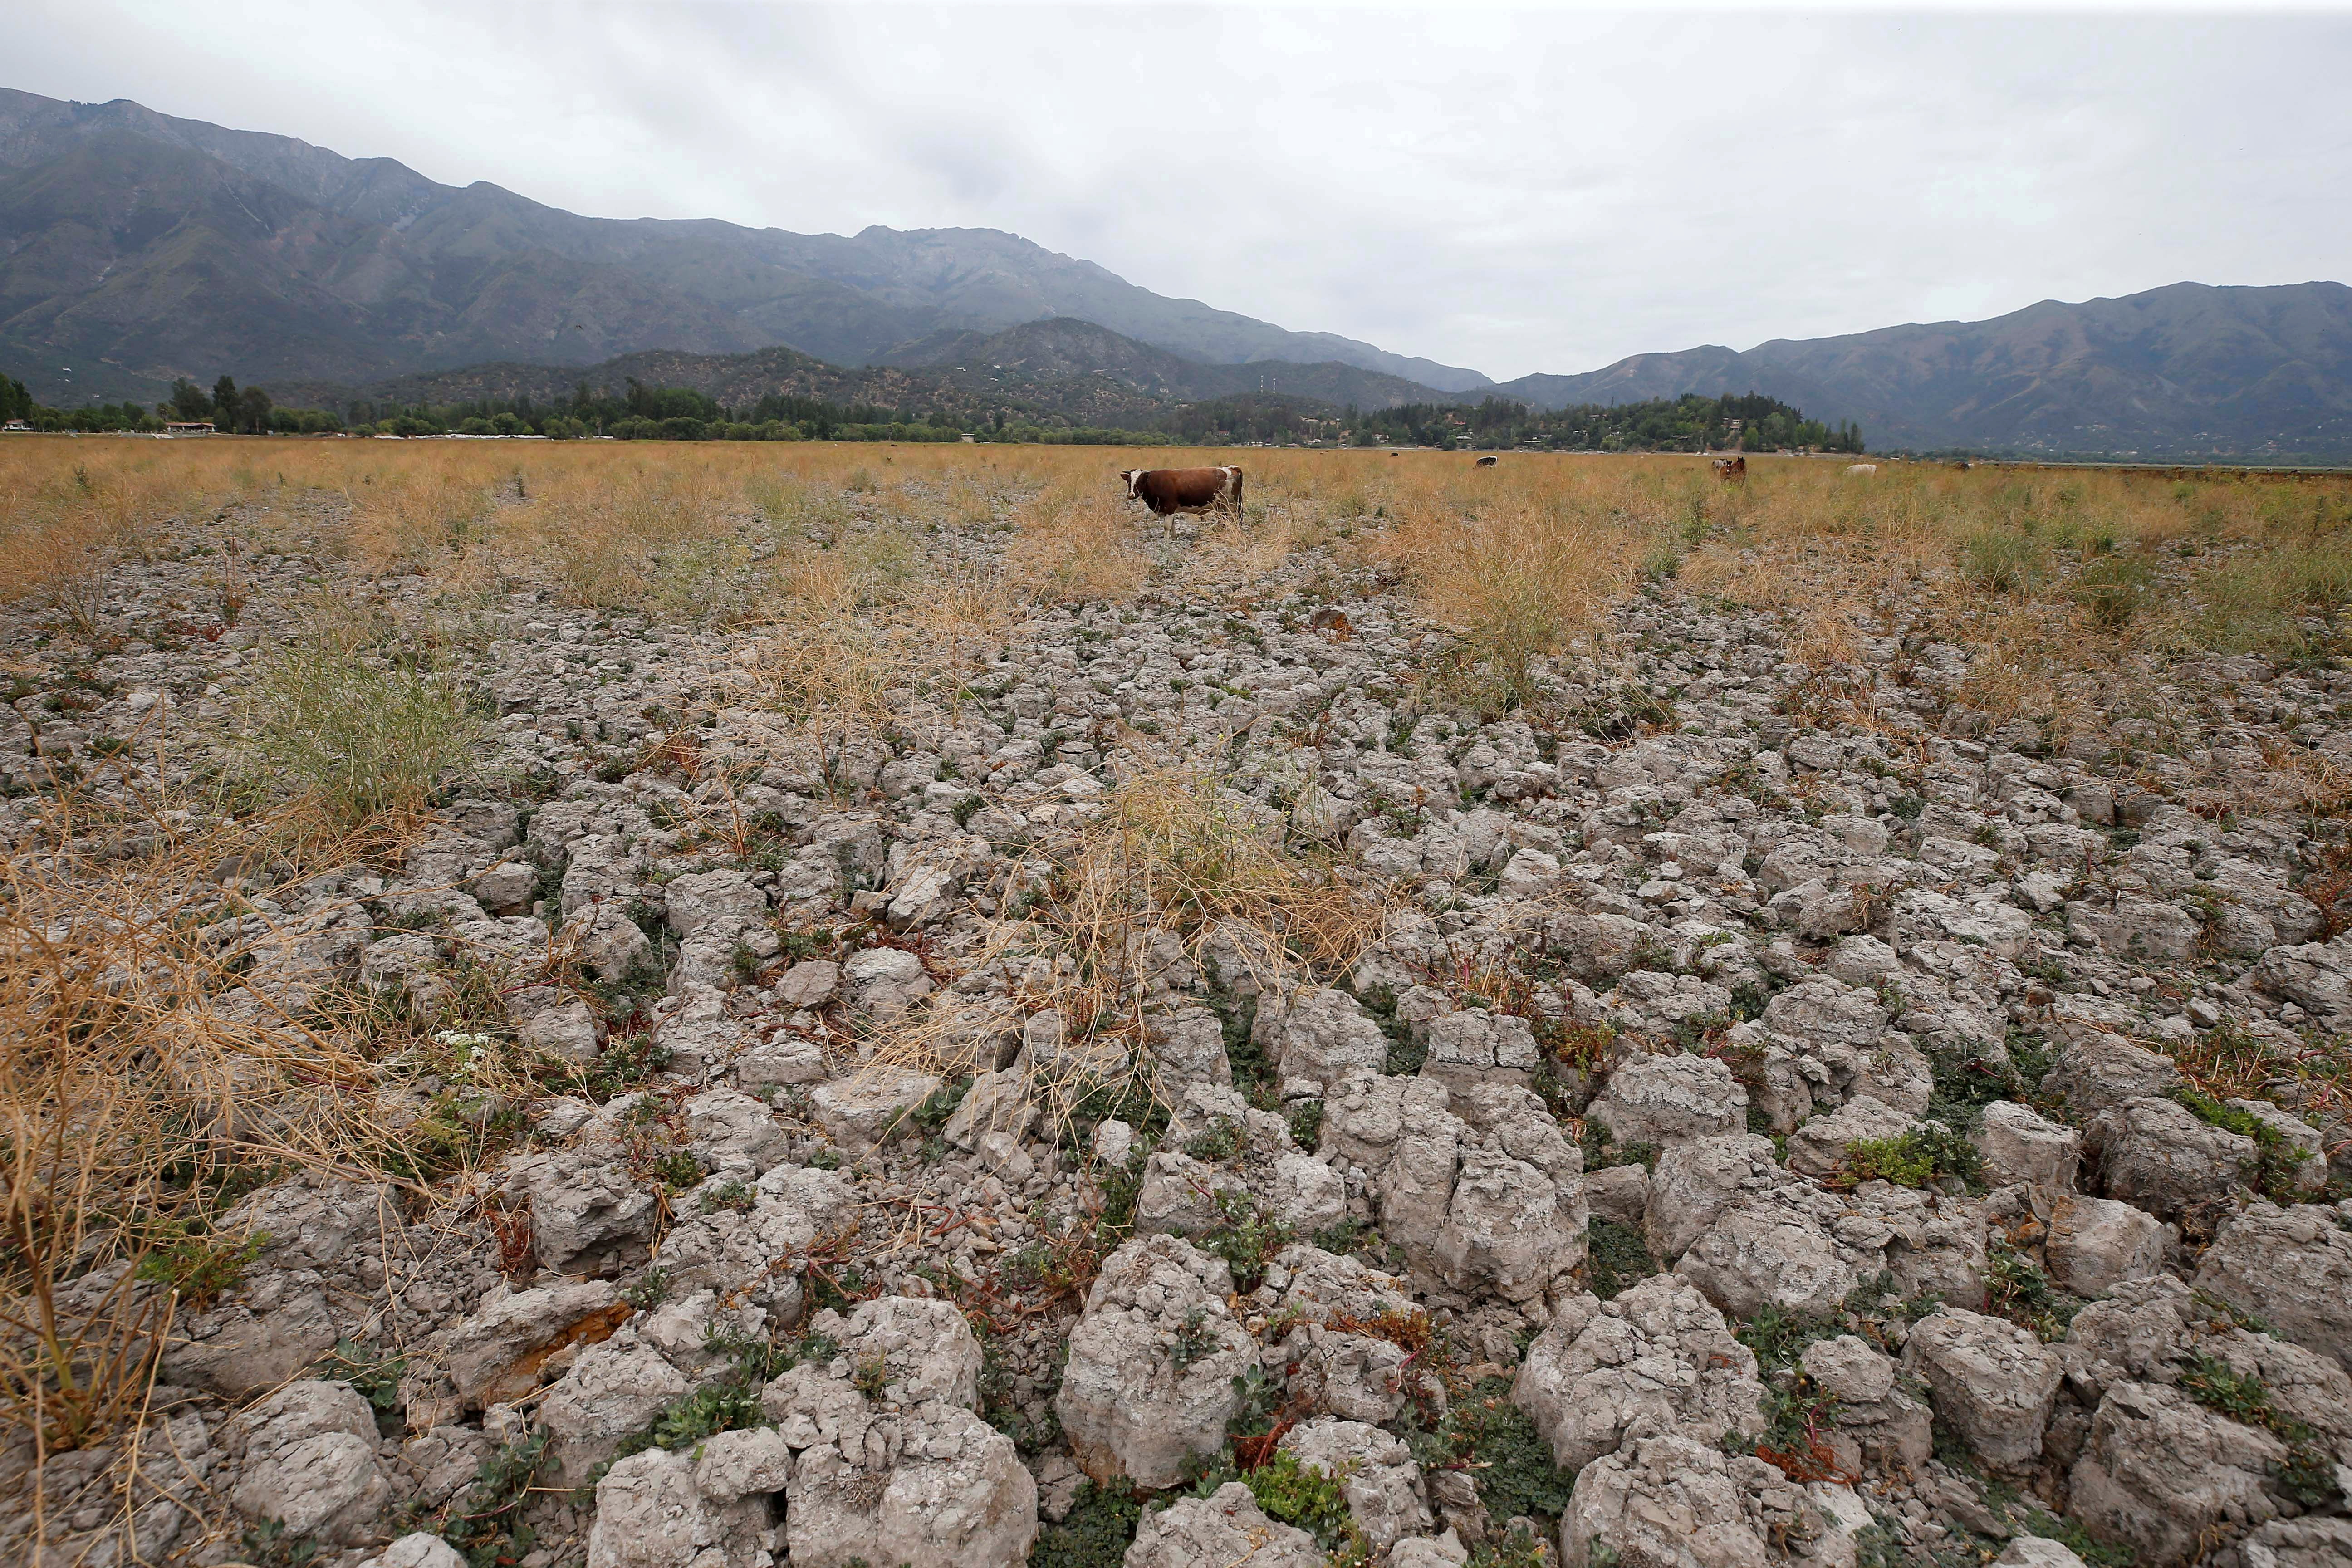 A cow stands on land that used to be filled with water, at the Aculeo Lagoon in Paine, Chile January 9, 2019. Picture taken January 9, 2019. REUTERS/Rodrigo Garrido/File Photo